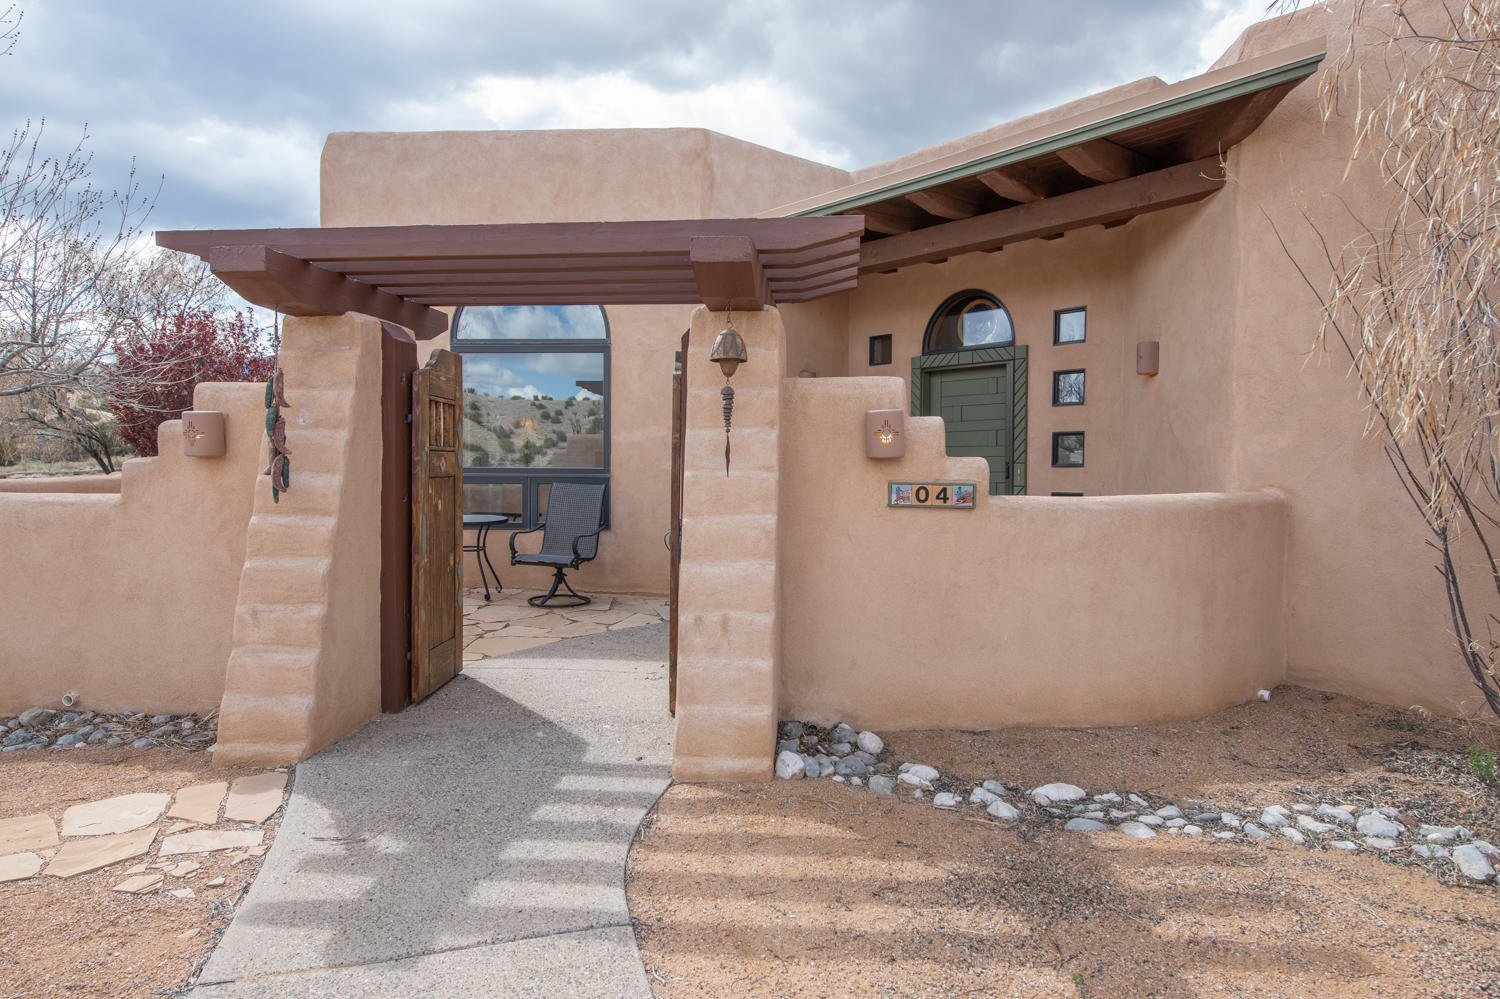 Santa Fe charm in a custom home on Placitas. Great views of colorful mesas providing maximum privacy on 1.41 acres. Enter your new nest through the protective front courtyard gates to a hand carved front door. Upon entering feel all cozy with authentic adobe walls, wood beams accenting the living and formal dining rooms. The kitchen features a huge center island, decorator colors, stainless appliances, big window with an even bigger view. A kiva fireplace is in the breakfast nook with sliding doors to the patio. More sliding doors in the living room offering access to the patio and another kiva fireplace. The master suite with views, huge closet, all new bath with sculptural deep soaking tub, and glass shower. You really can have it all here, plenty of patios. Plus a three car garage.